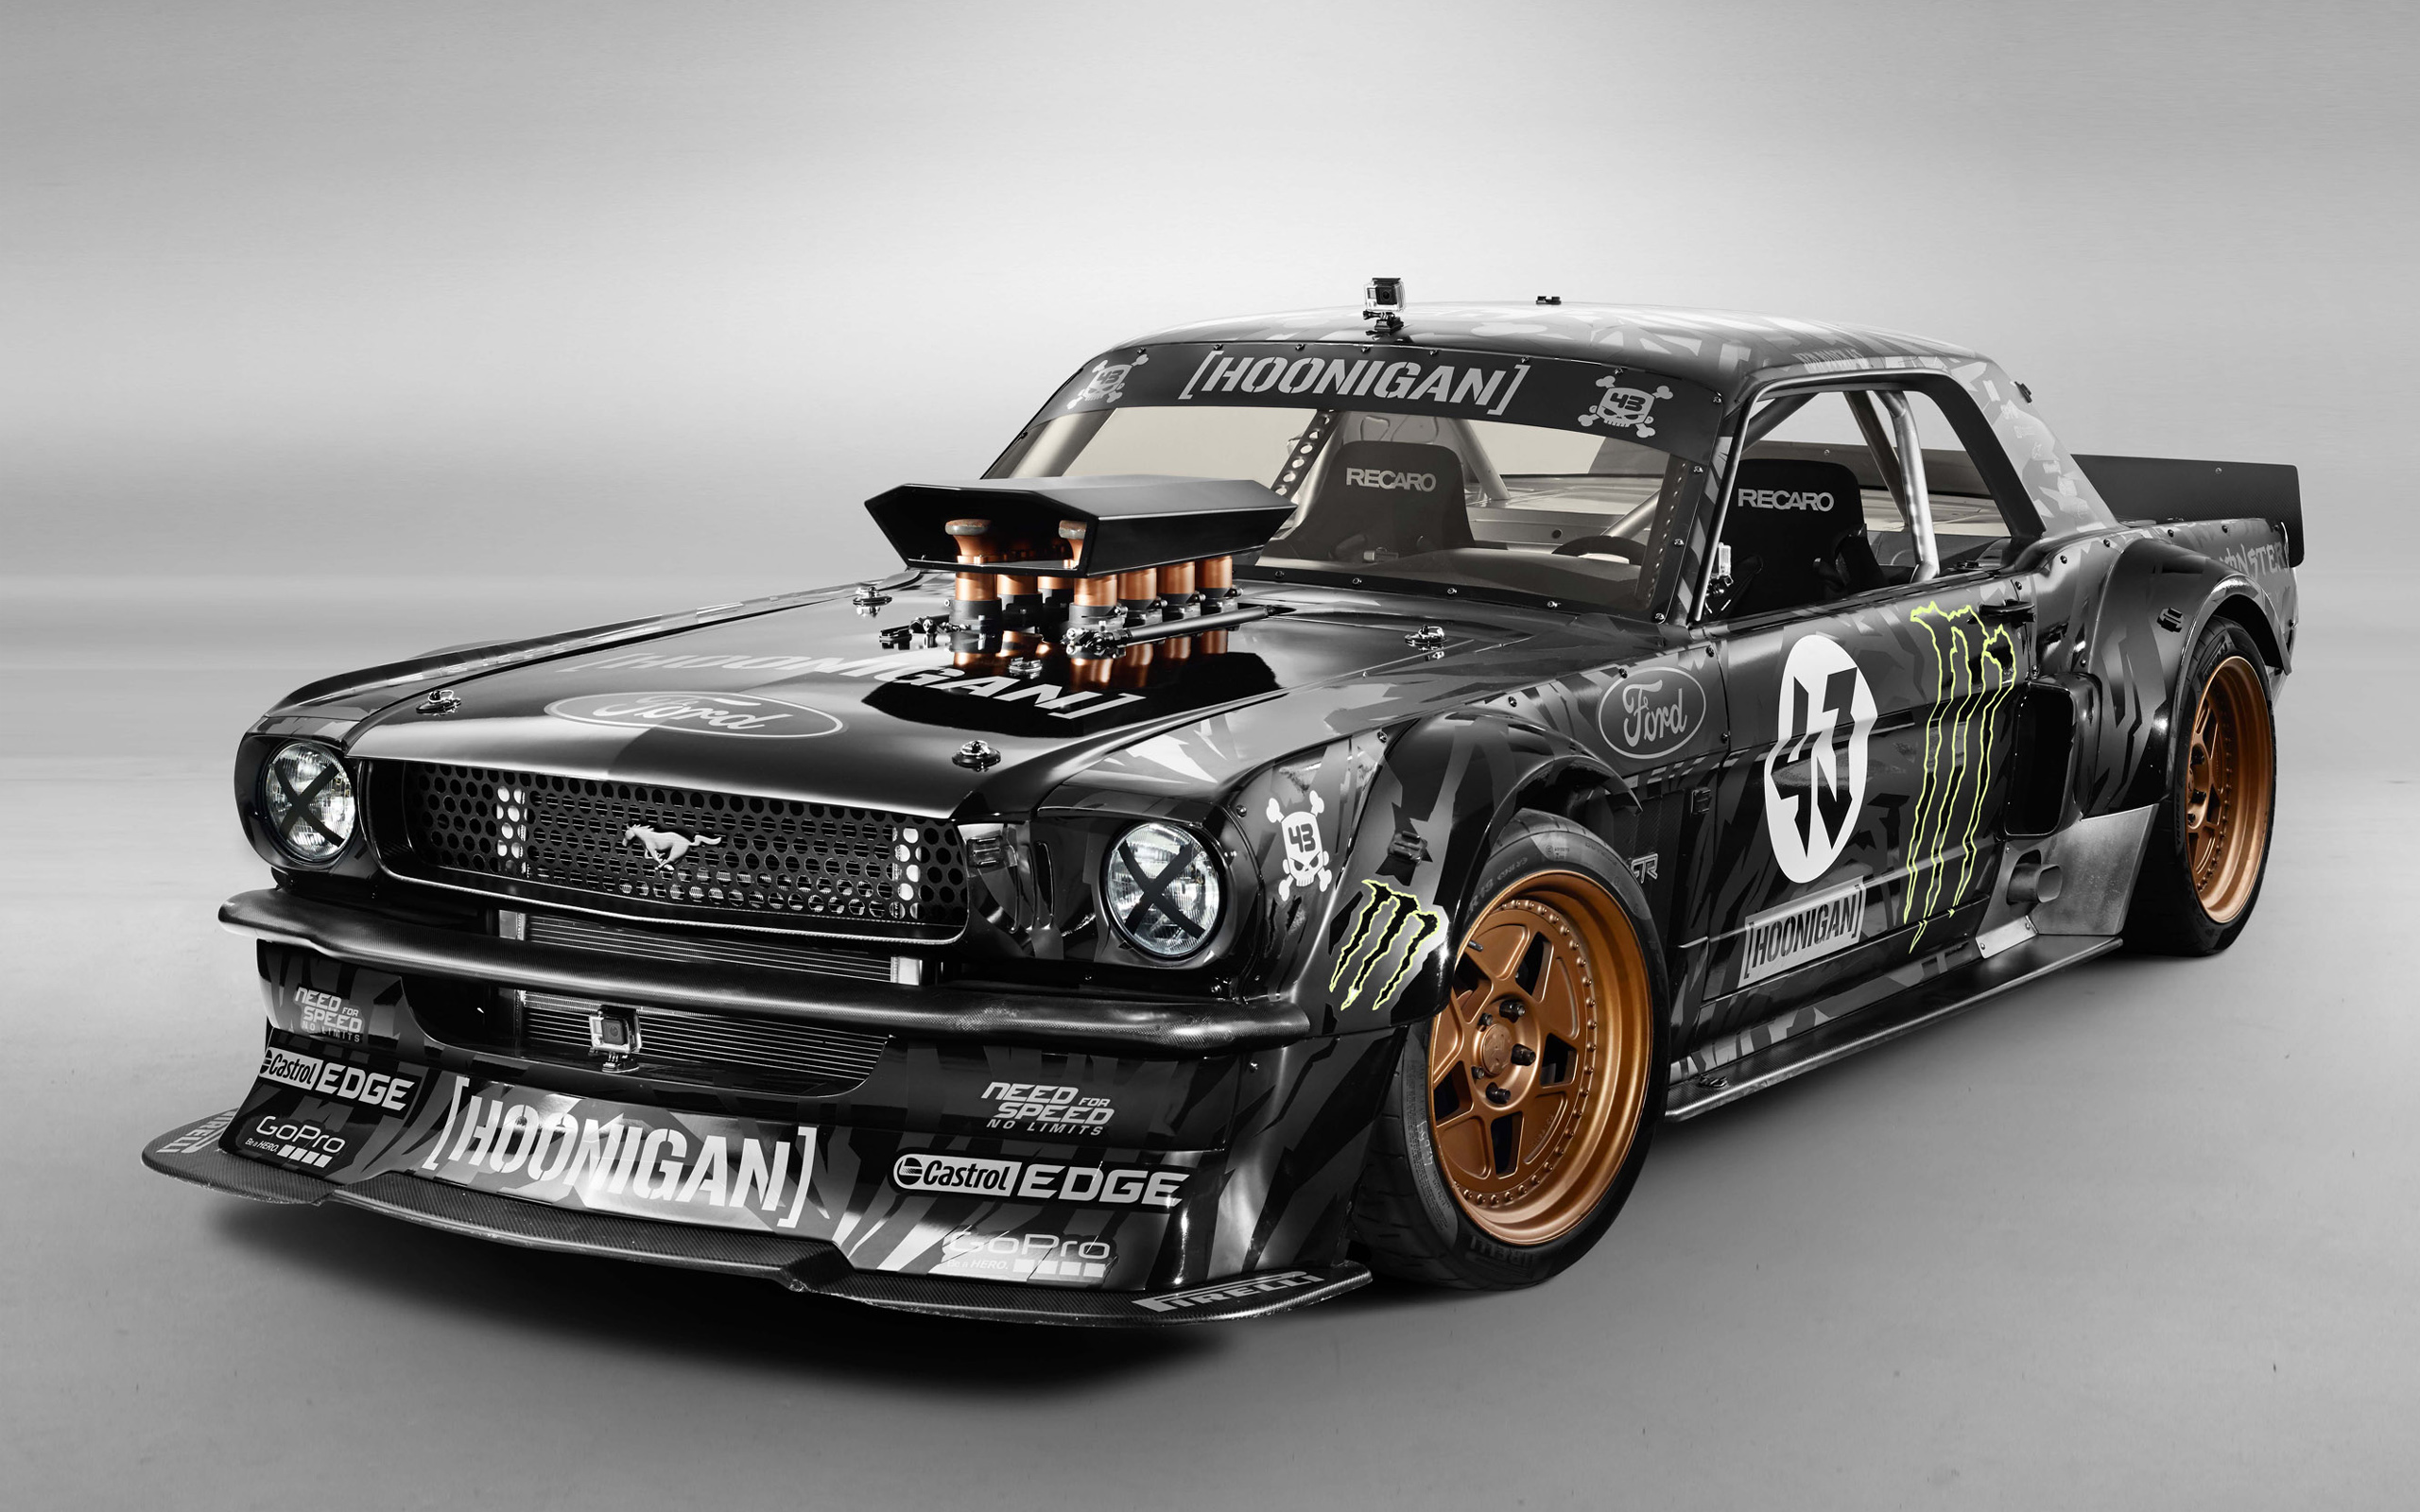 Ken Block Ford Mustang Hoonicorn RTR Wallpaper HD Car Wallpapers 2560x1600